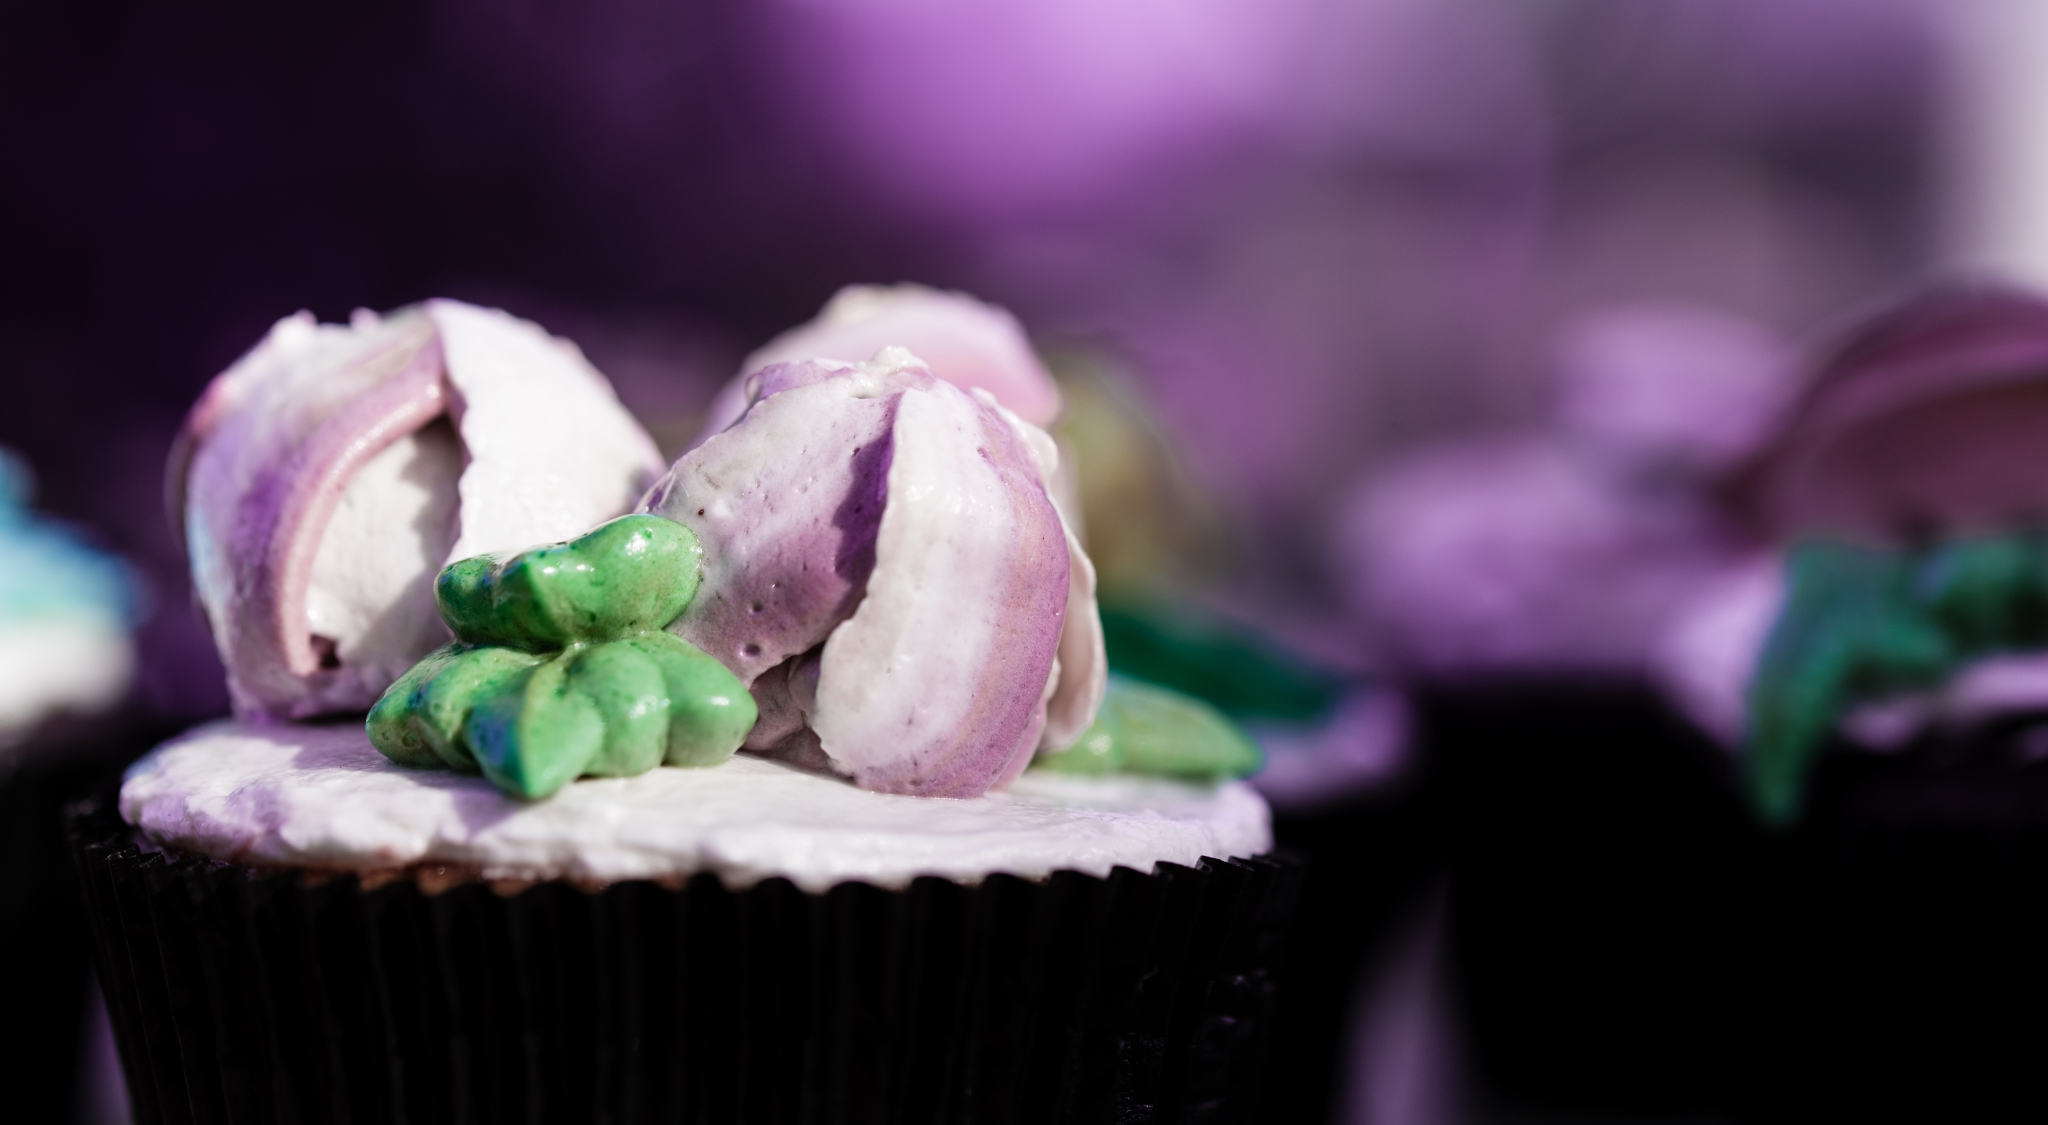 A detail of a cupcake